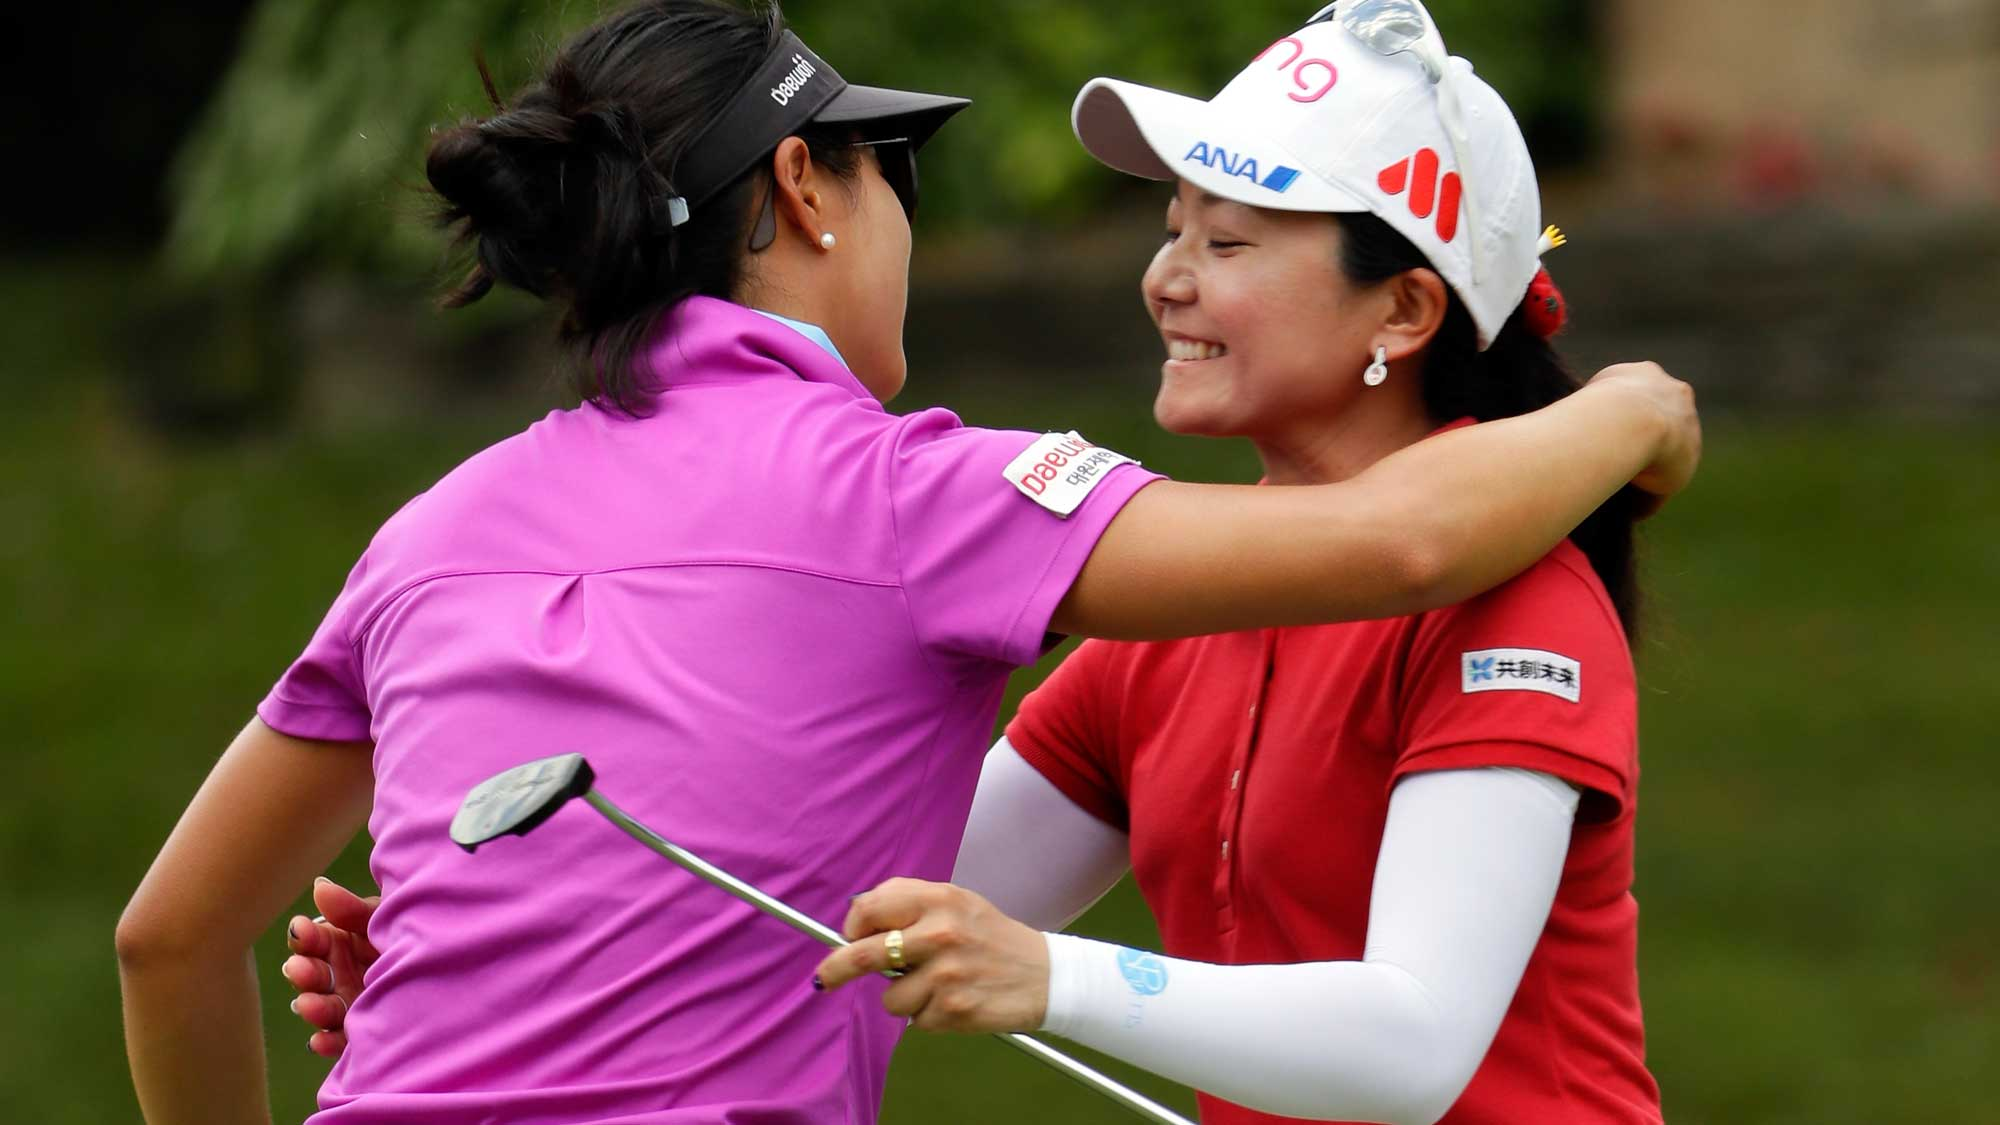 Ayako Uehara of Japan hugs Kelly W Shon on the 9th hole after their round during the first round of the Walmart NW Arkansas Championship